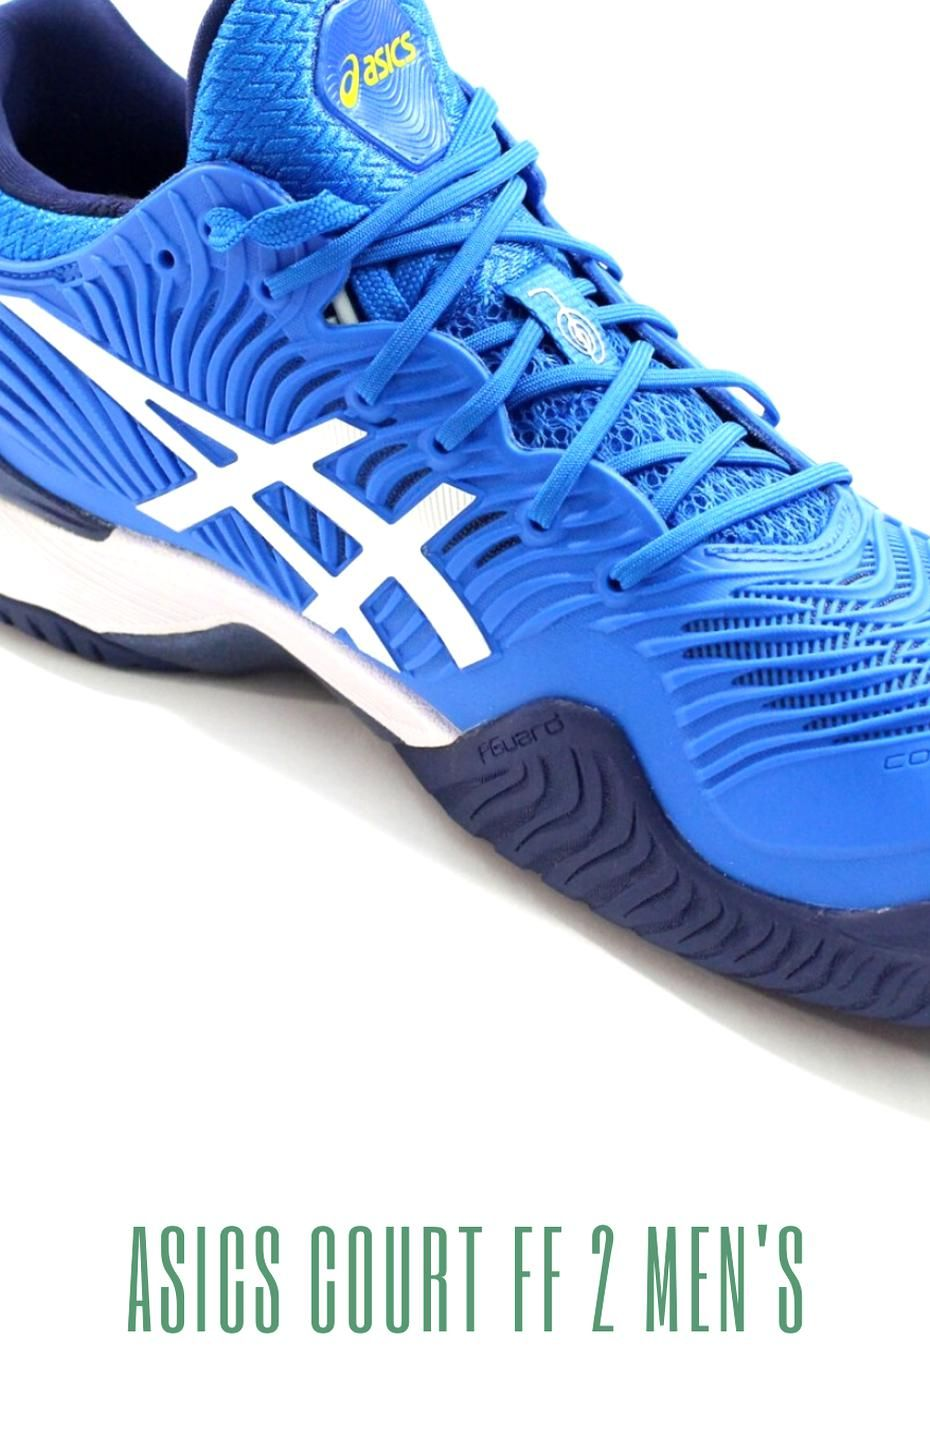 Asics Court Ff 2 Mens Global Tennis Shoe Review Novak Djokovic Tennis Shoe Novak Djokovic Wallpaper Novakndjokovic Quo In 2020 Tennis Clothes Shoe Reviews Tennis Shoes